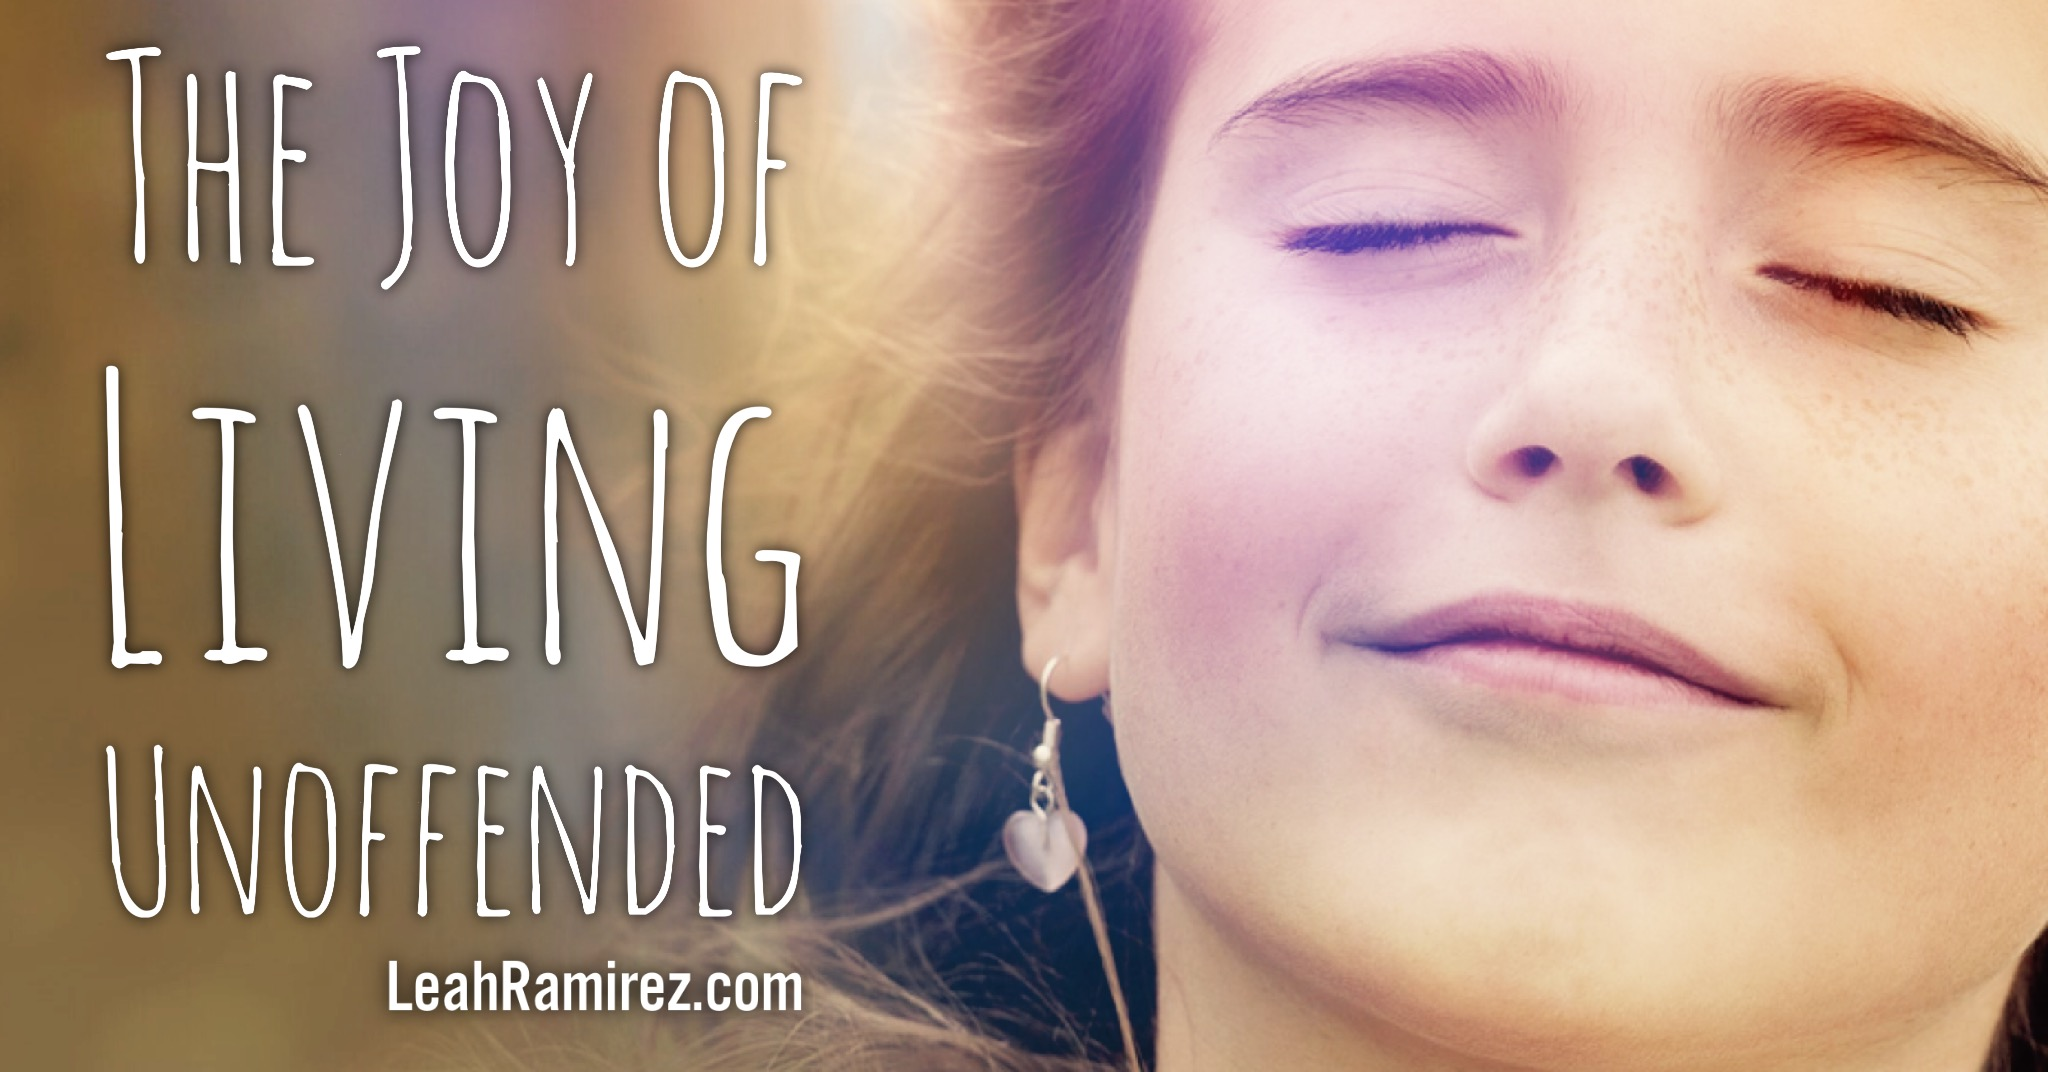 The Joy of Living Unoffended